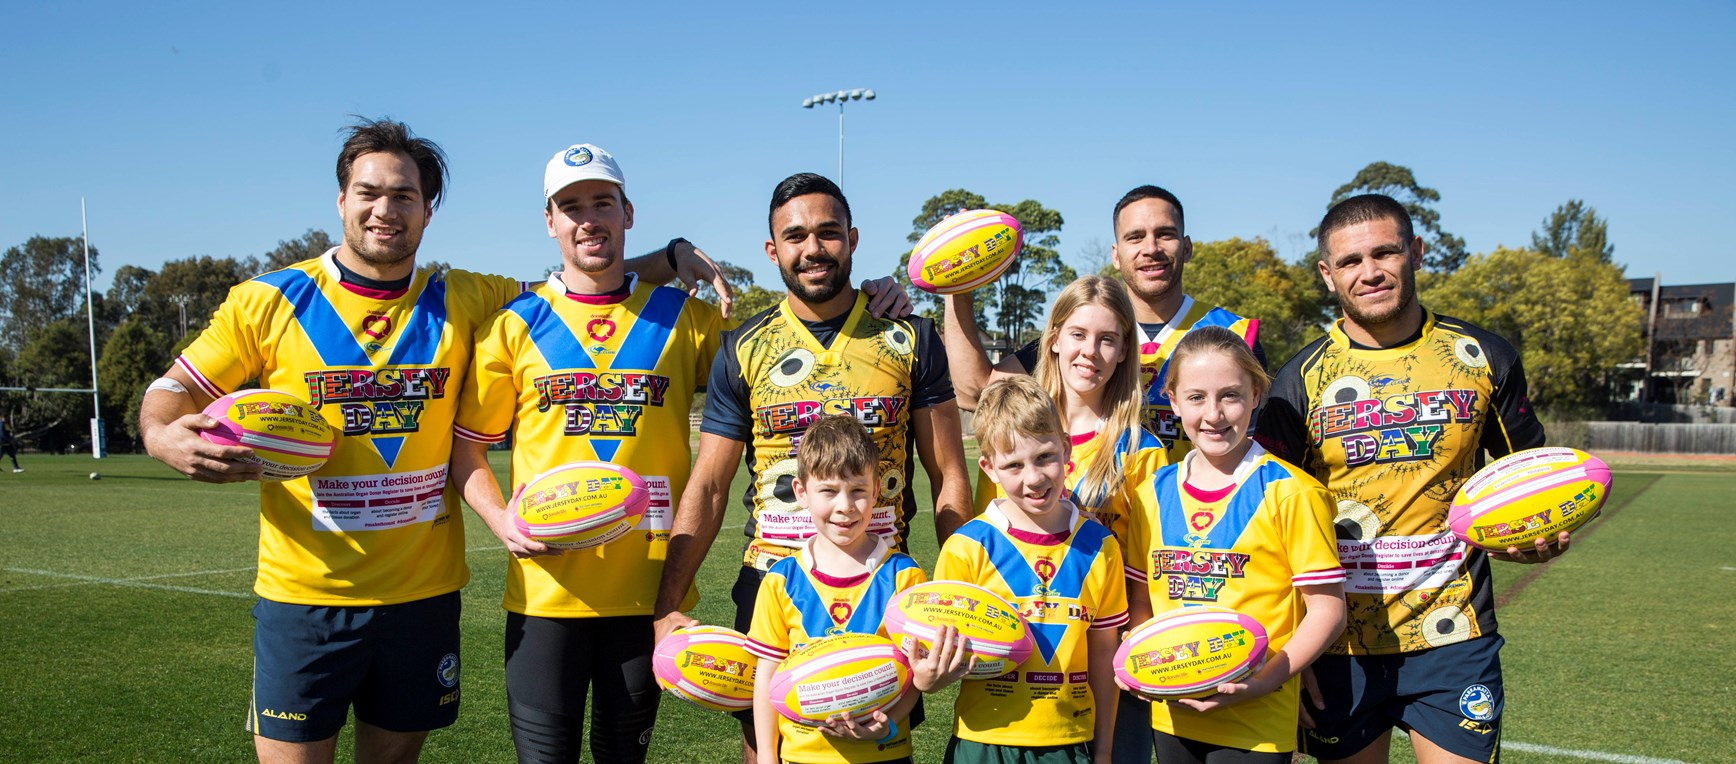 Eels support Jersey Day in photos